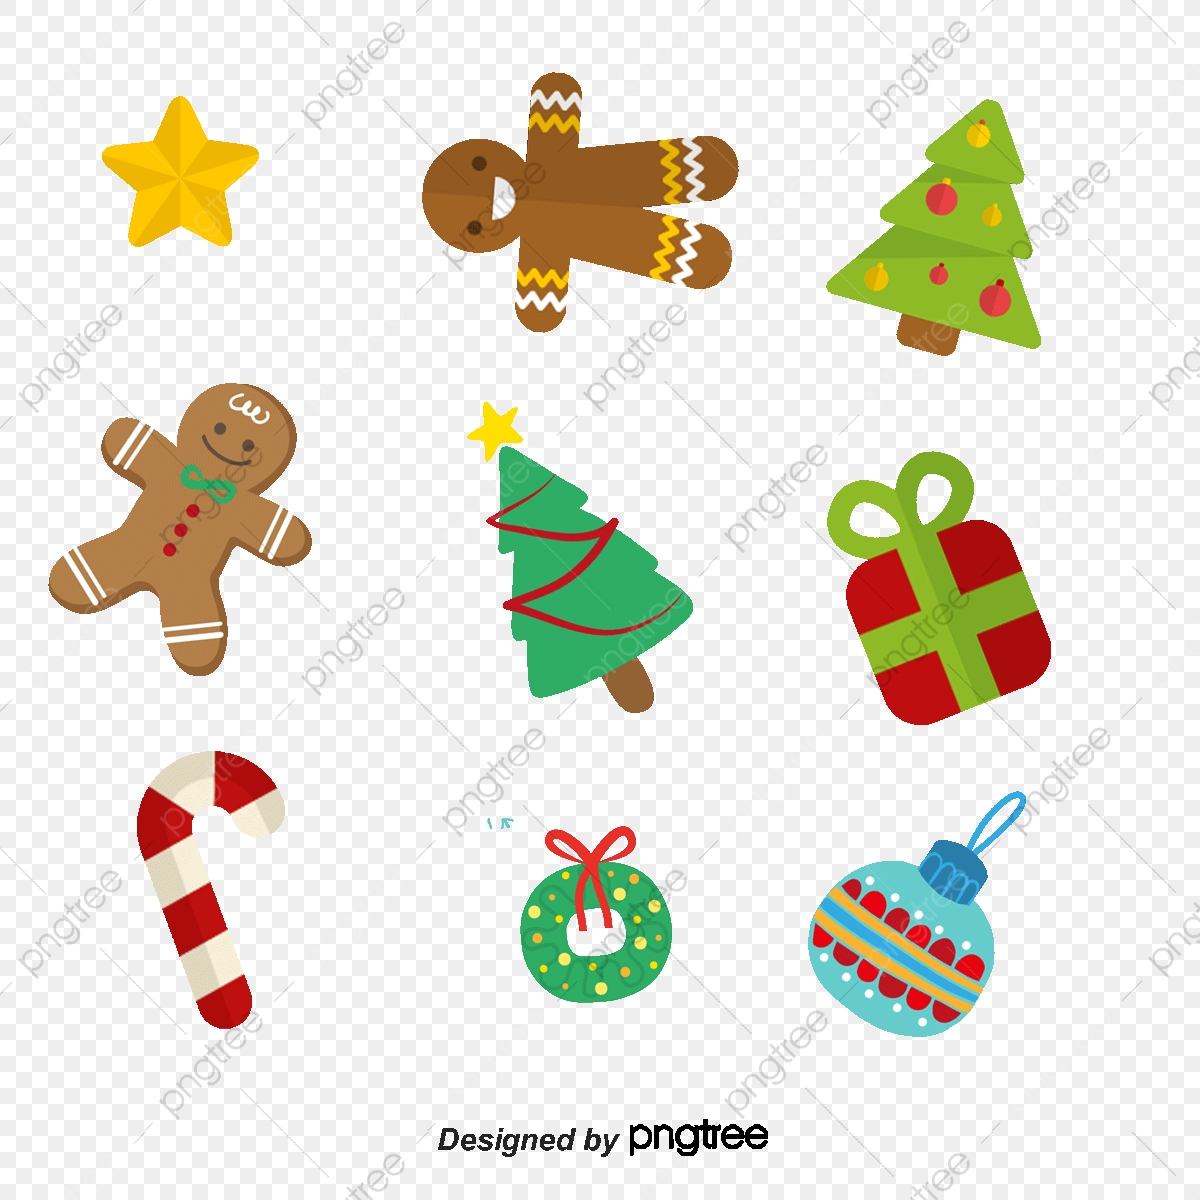 Christmas Crackers Png.Christmas Crackers Christmas Vector Christmas Background